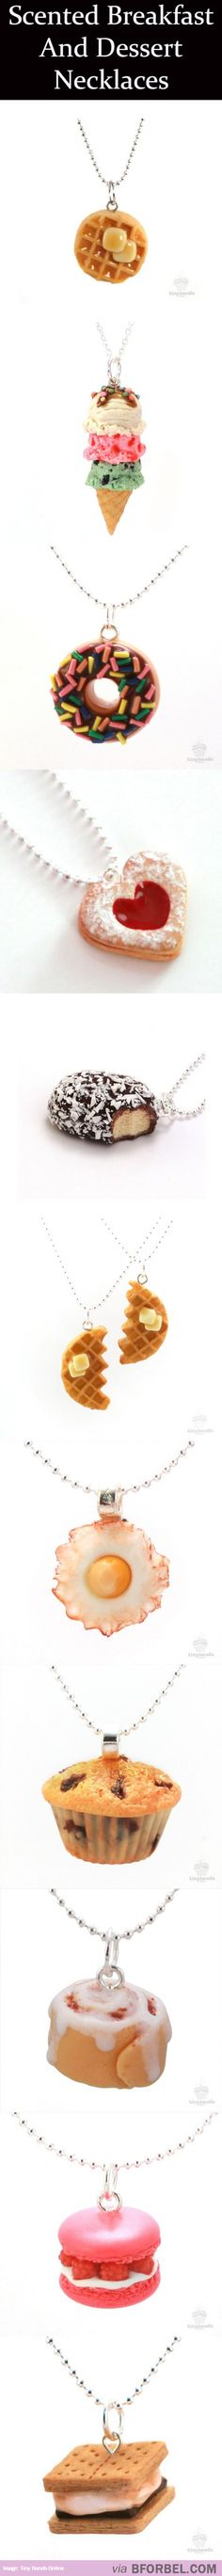 11 Scented Food Necklaces… $28